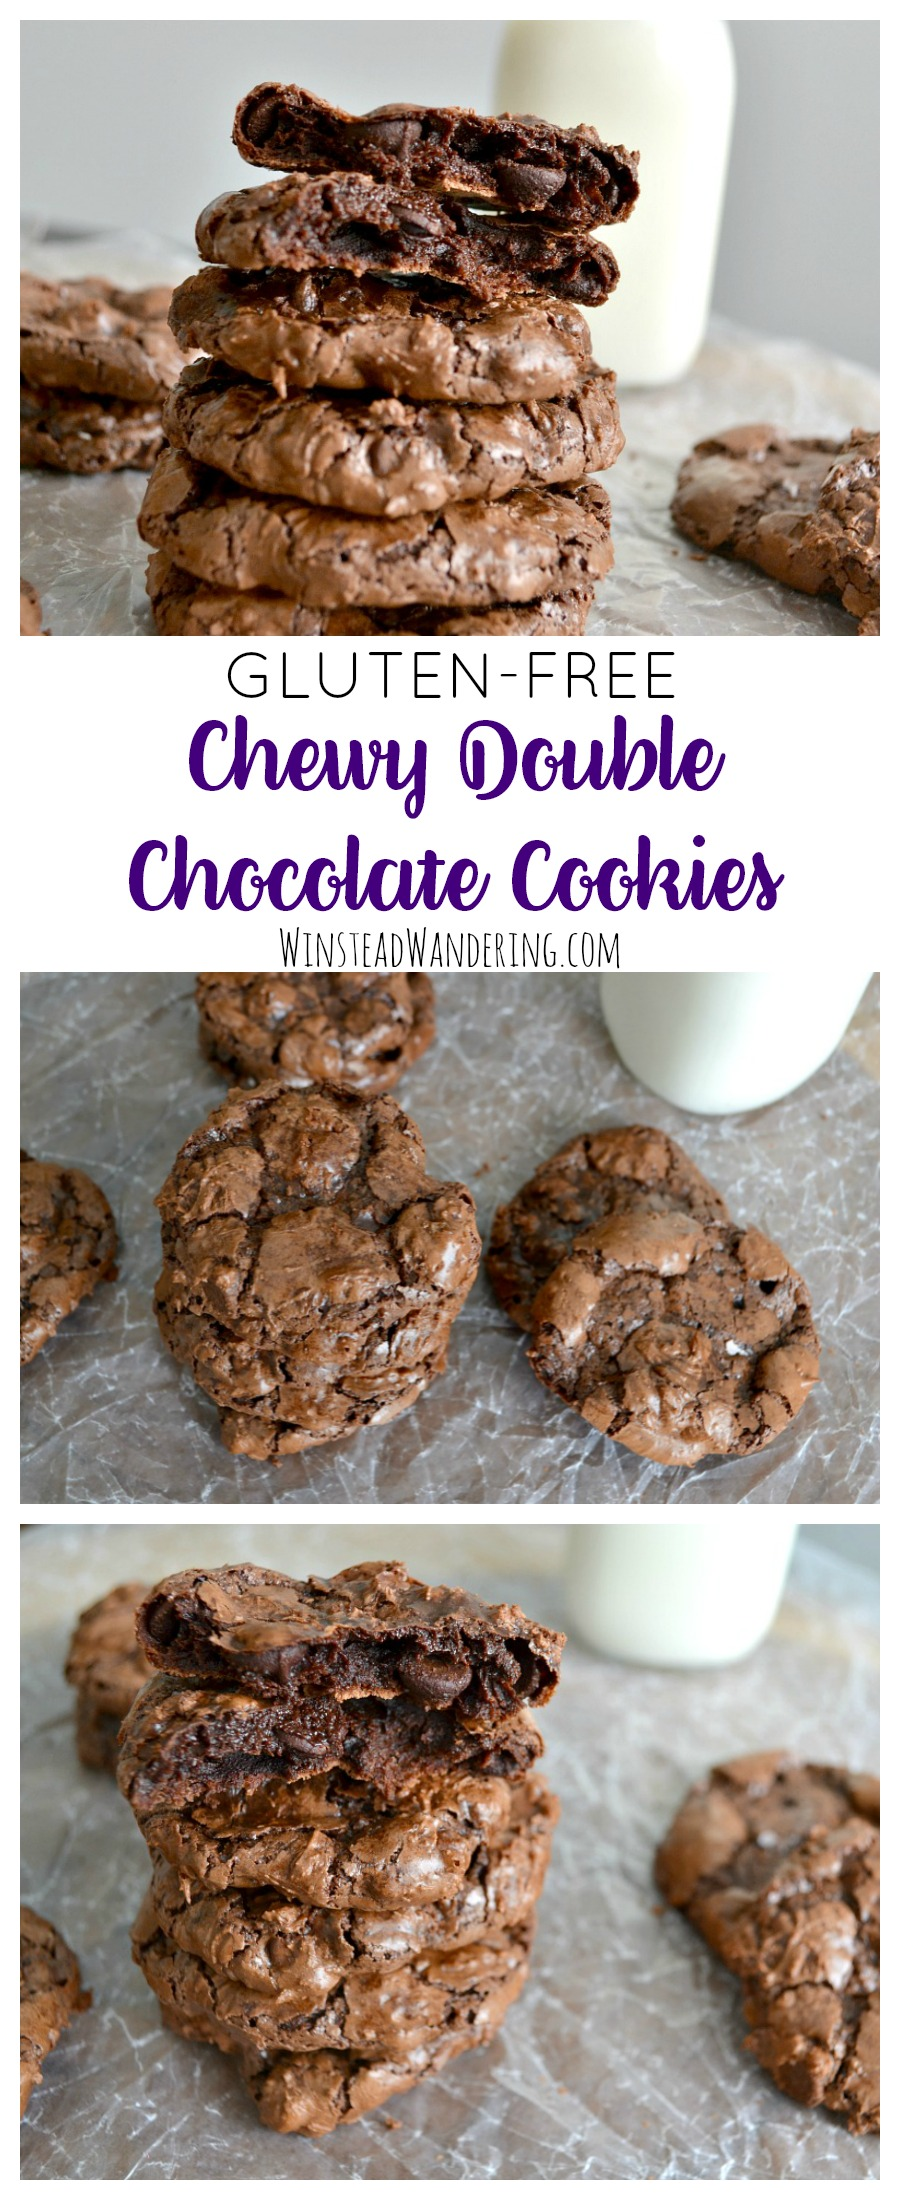 You won't miss the flour in these delightfully chewy, perfectly fudgy, beautifully crinkly Gluten-Free Double Chocolate Cookies. With just six ingredients, you can whip up a batch in no time.